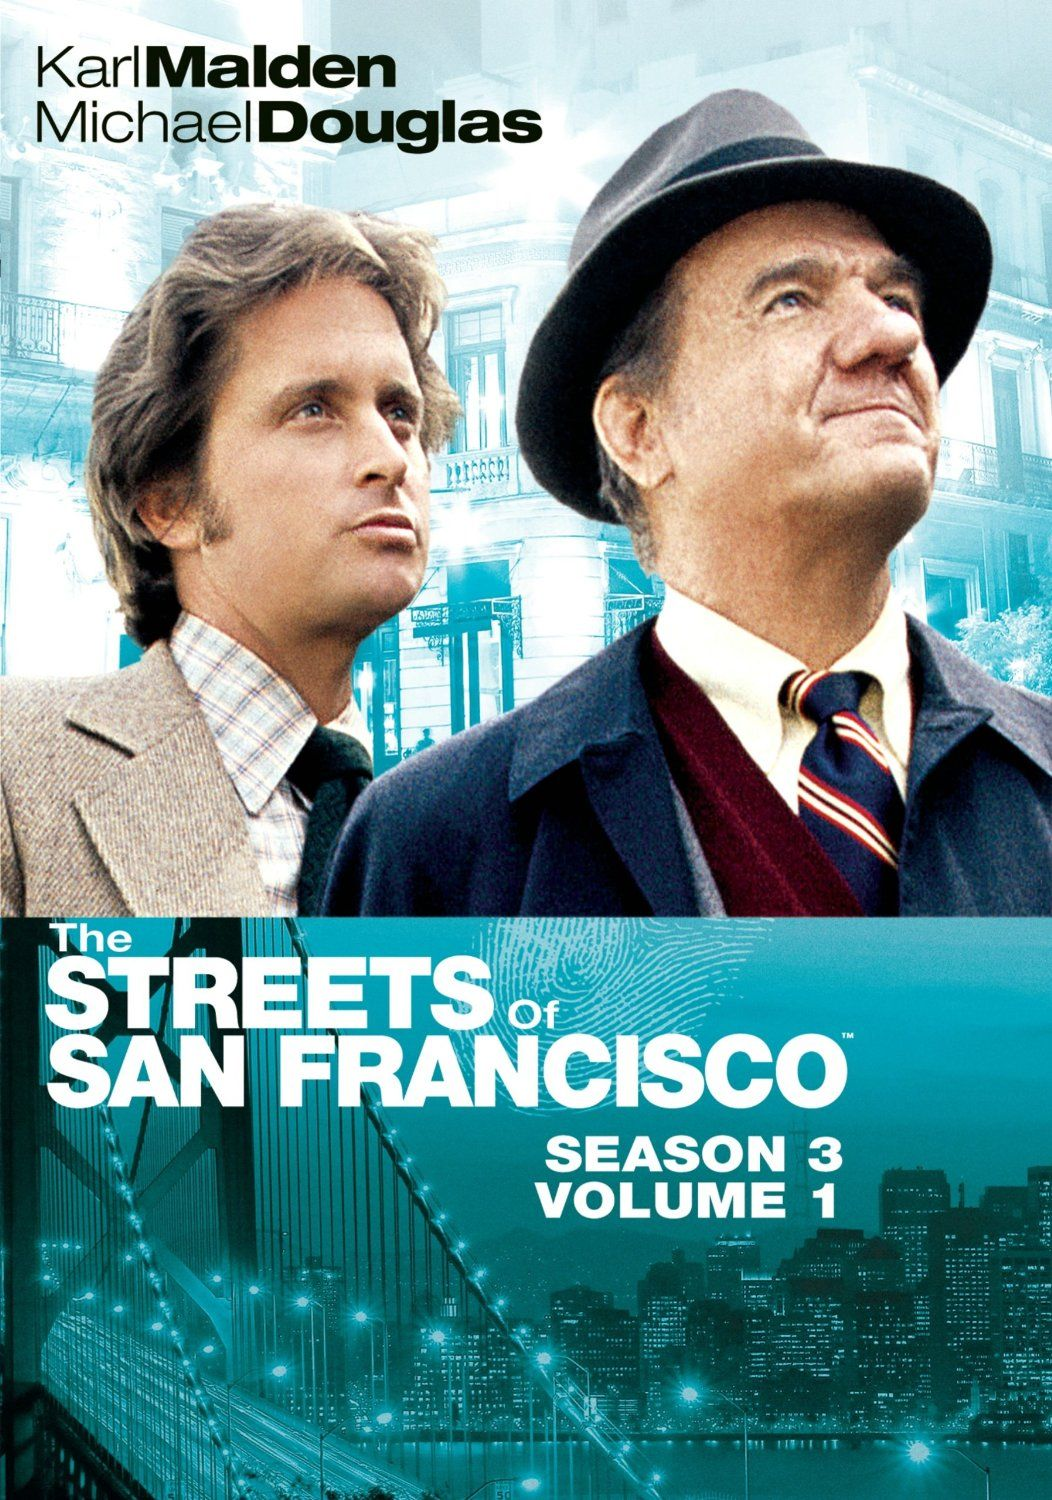 The Streets of San Francisco Serie Completa Ingles